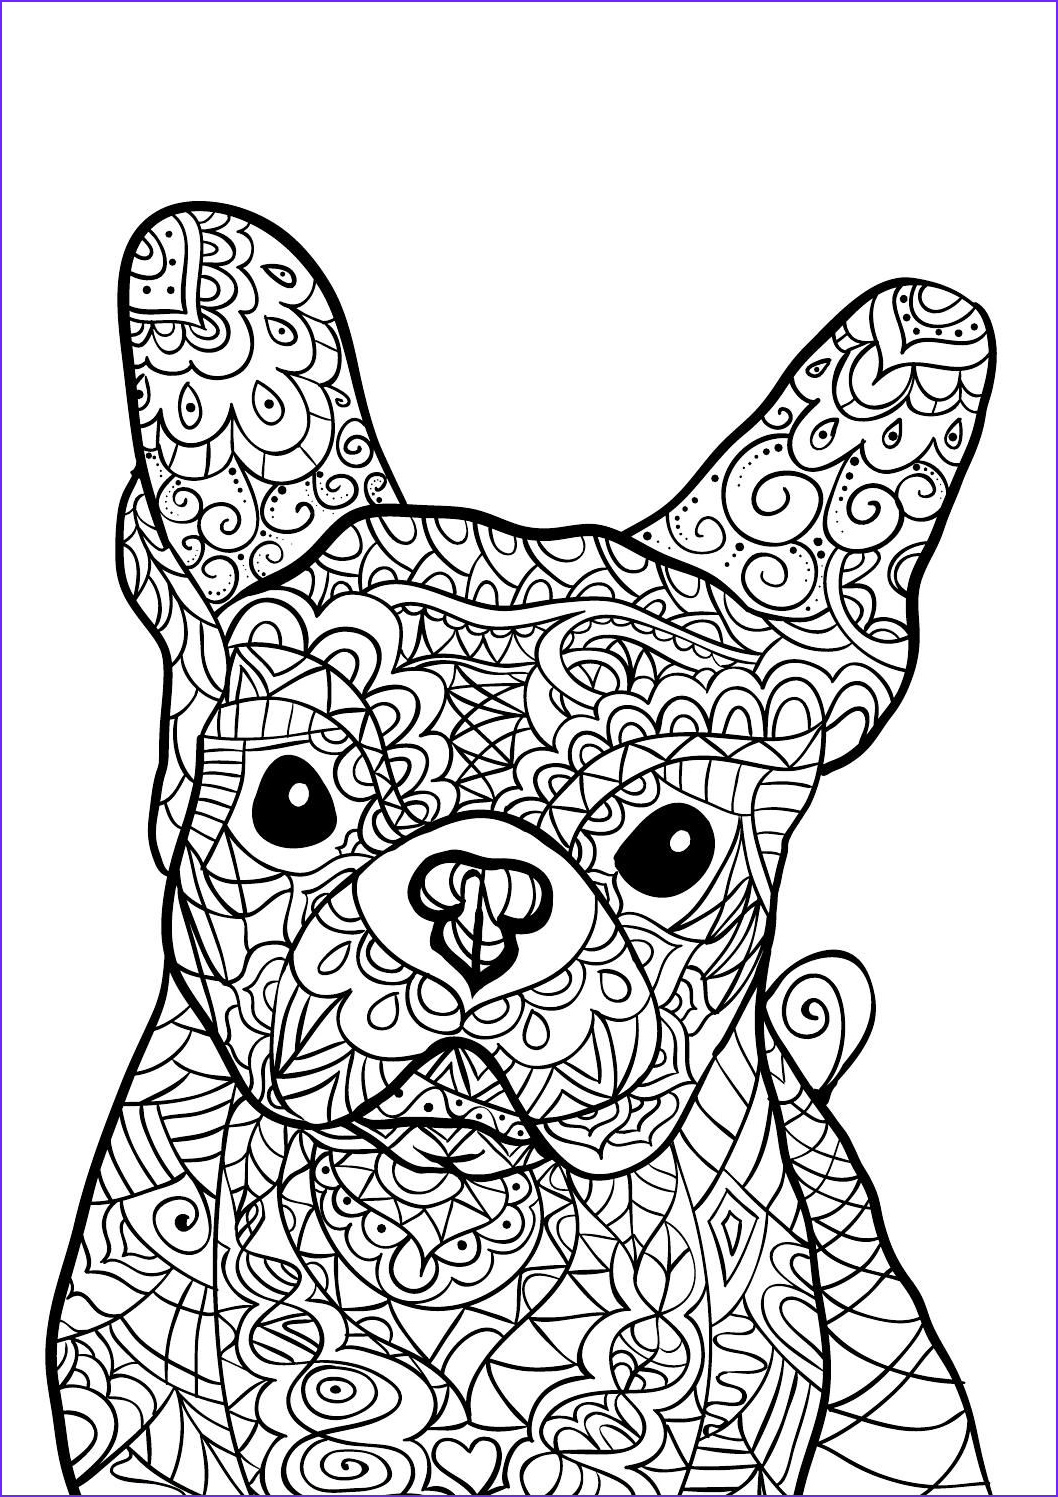 Color Coloring Page New Photos French Bulldog Coloring Pages at Getcolorings